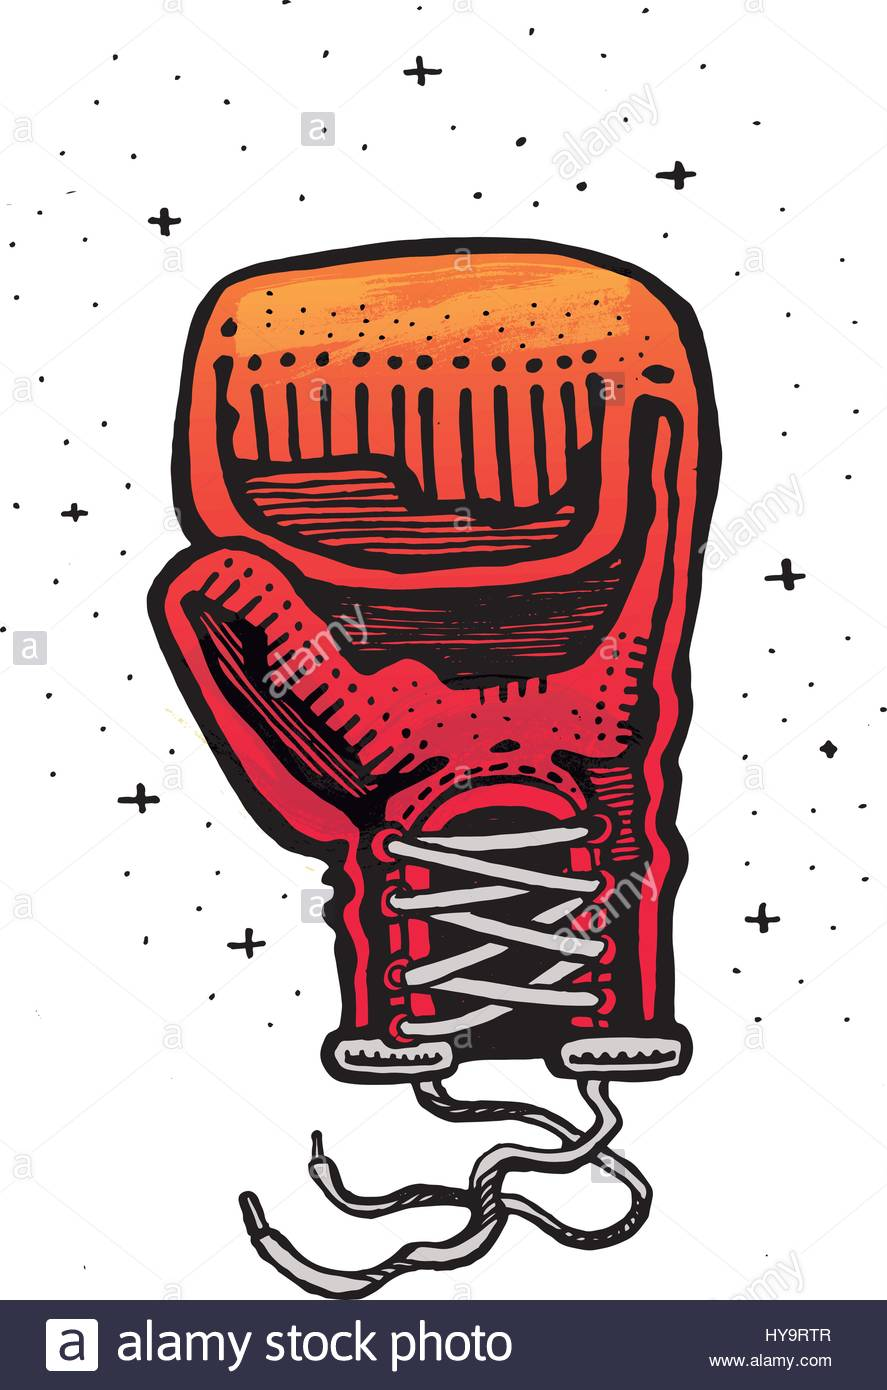 887x1390 Hand drawn vector illustration or drawing of a boxing glove Stock